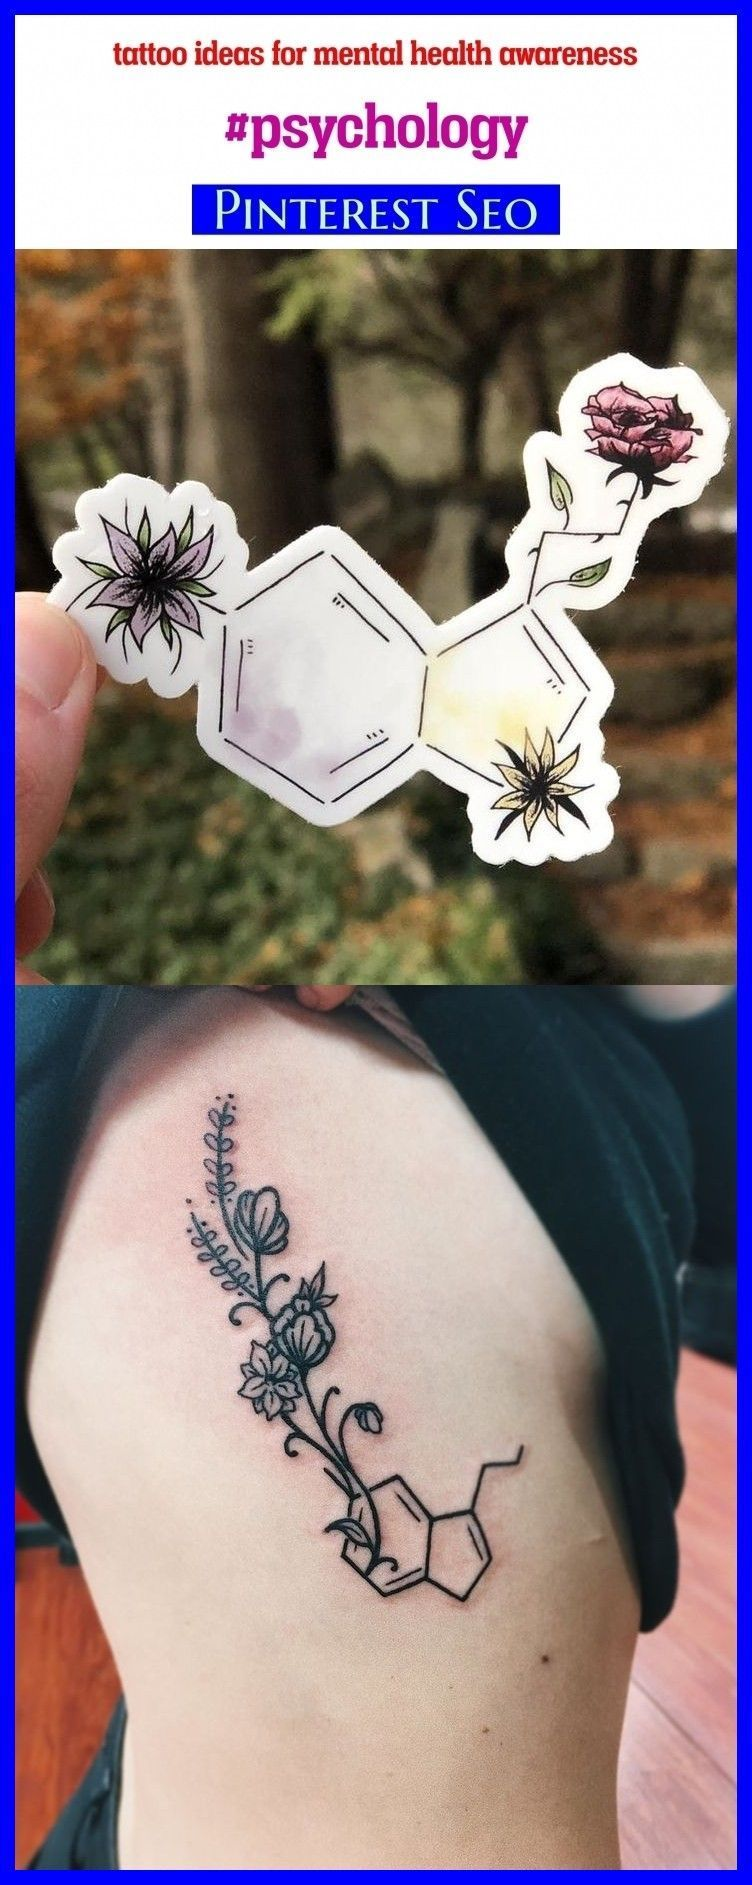 Pin on tattoos for guys